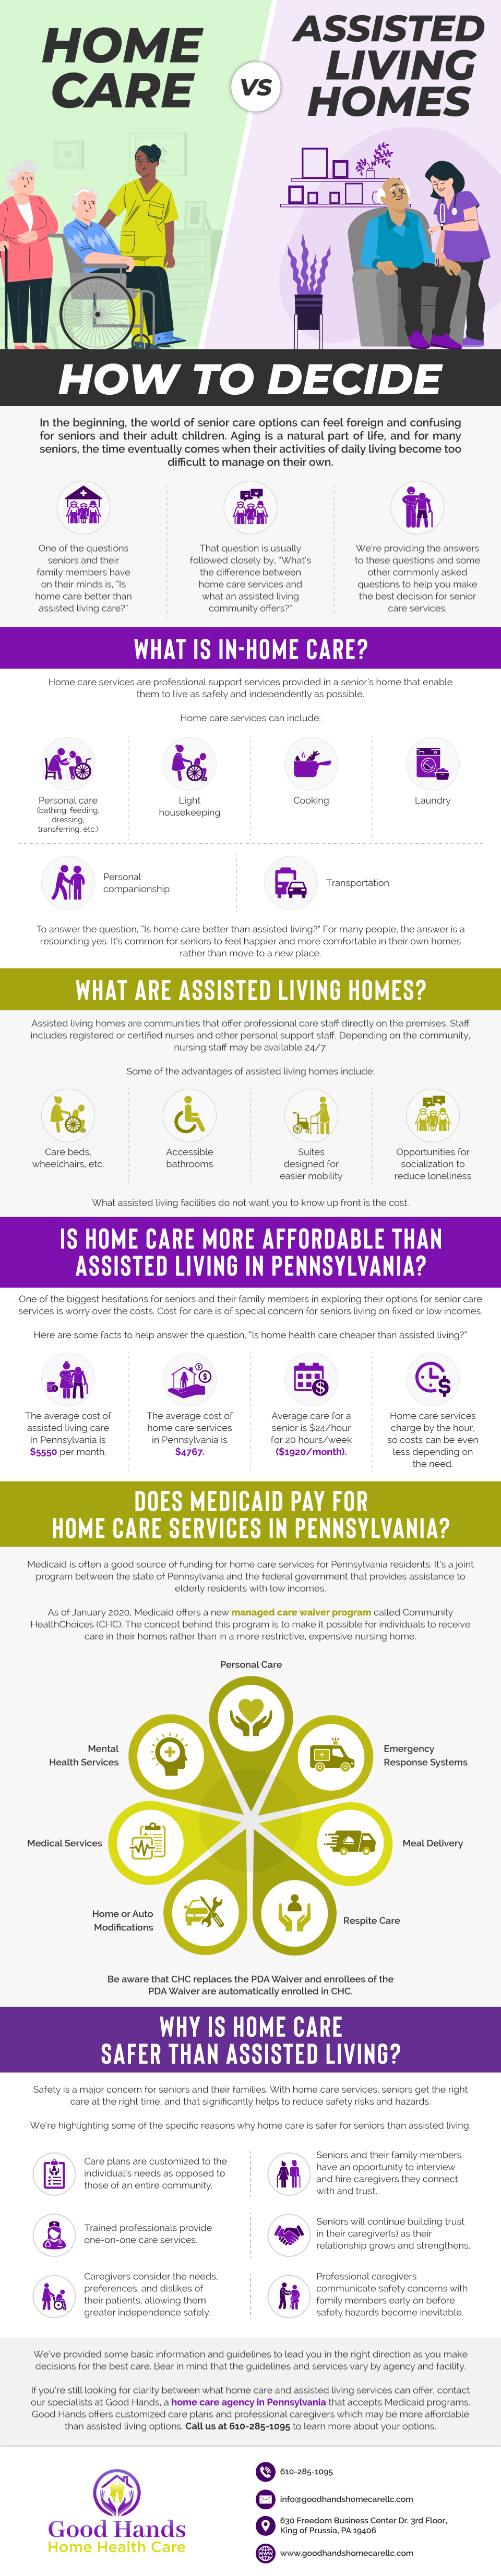 Home Care vs. Assisted Living Homes